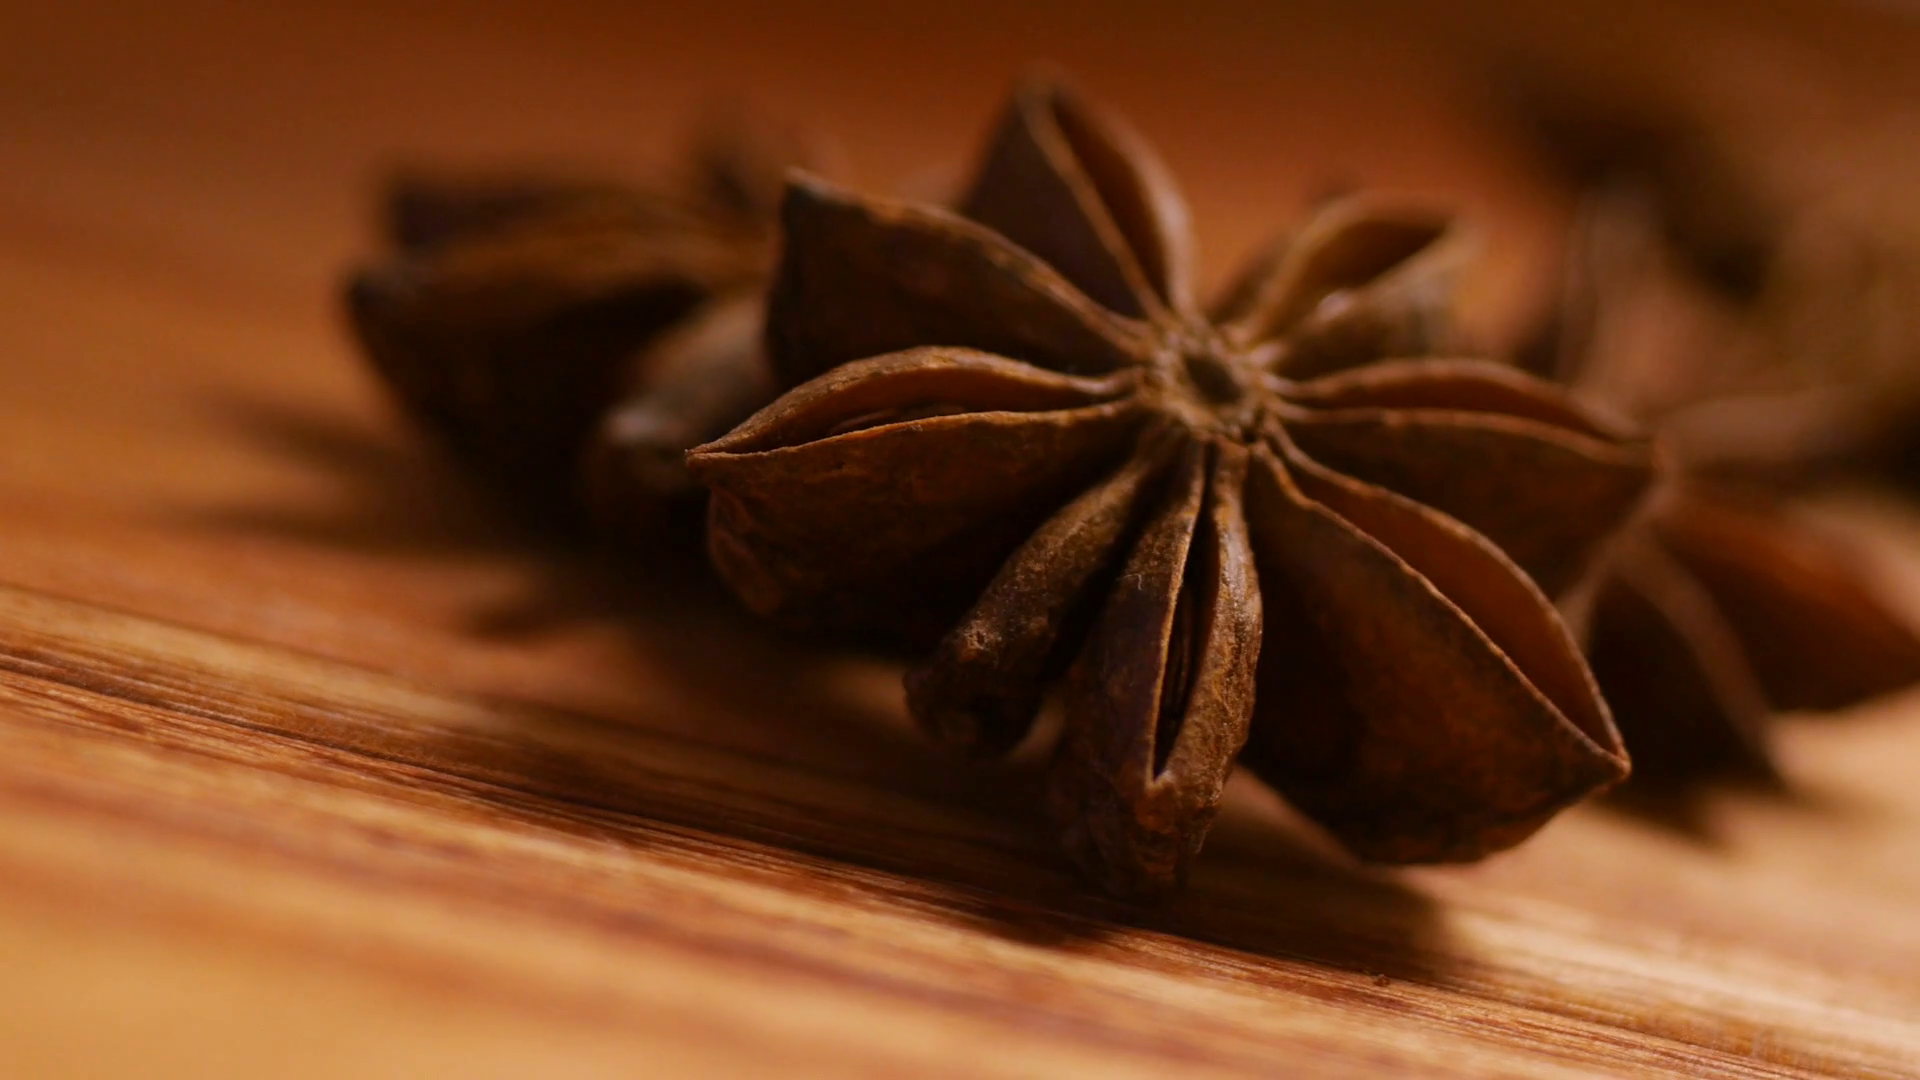 videoblocks-star-anise-close-up_rnivi2db